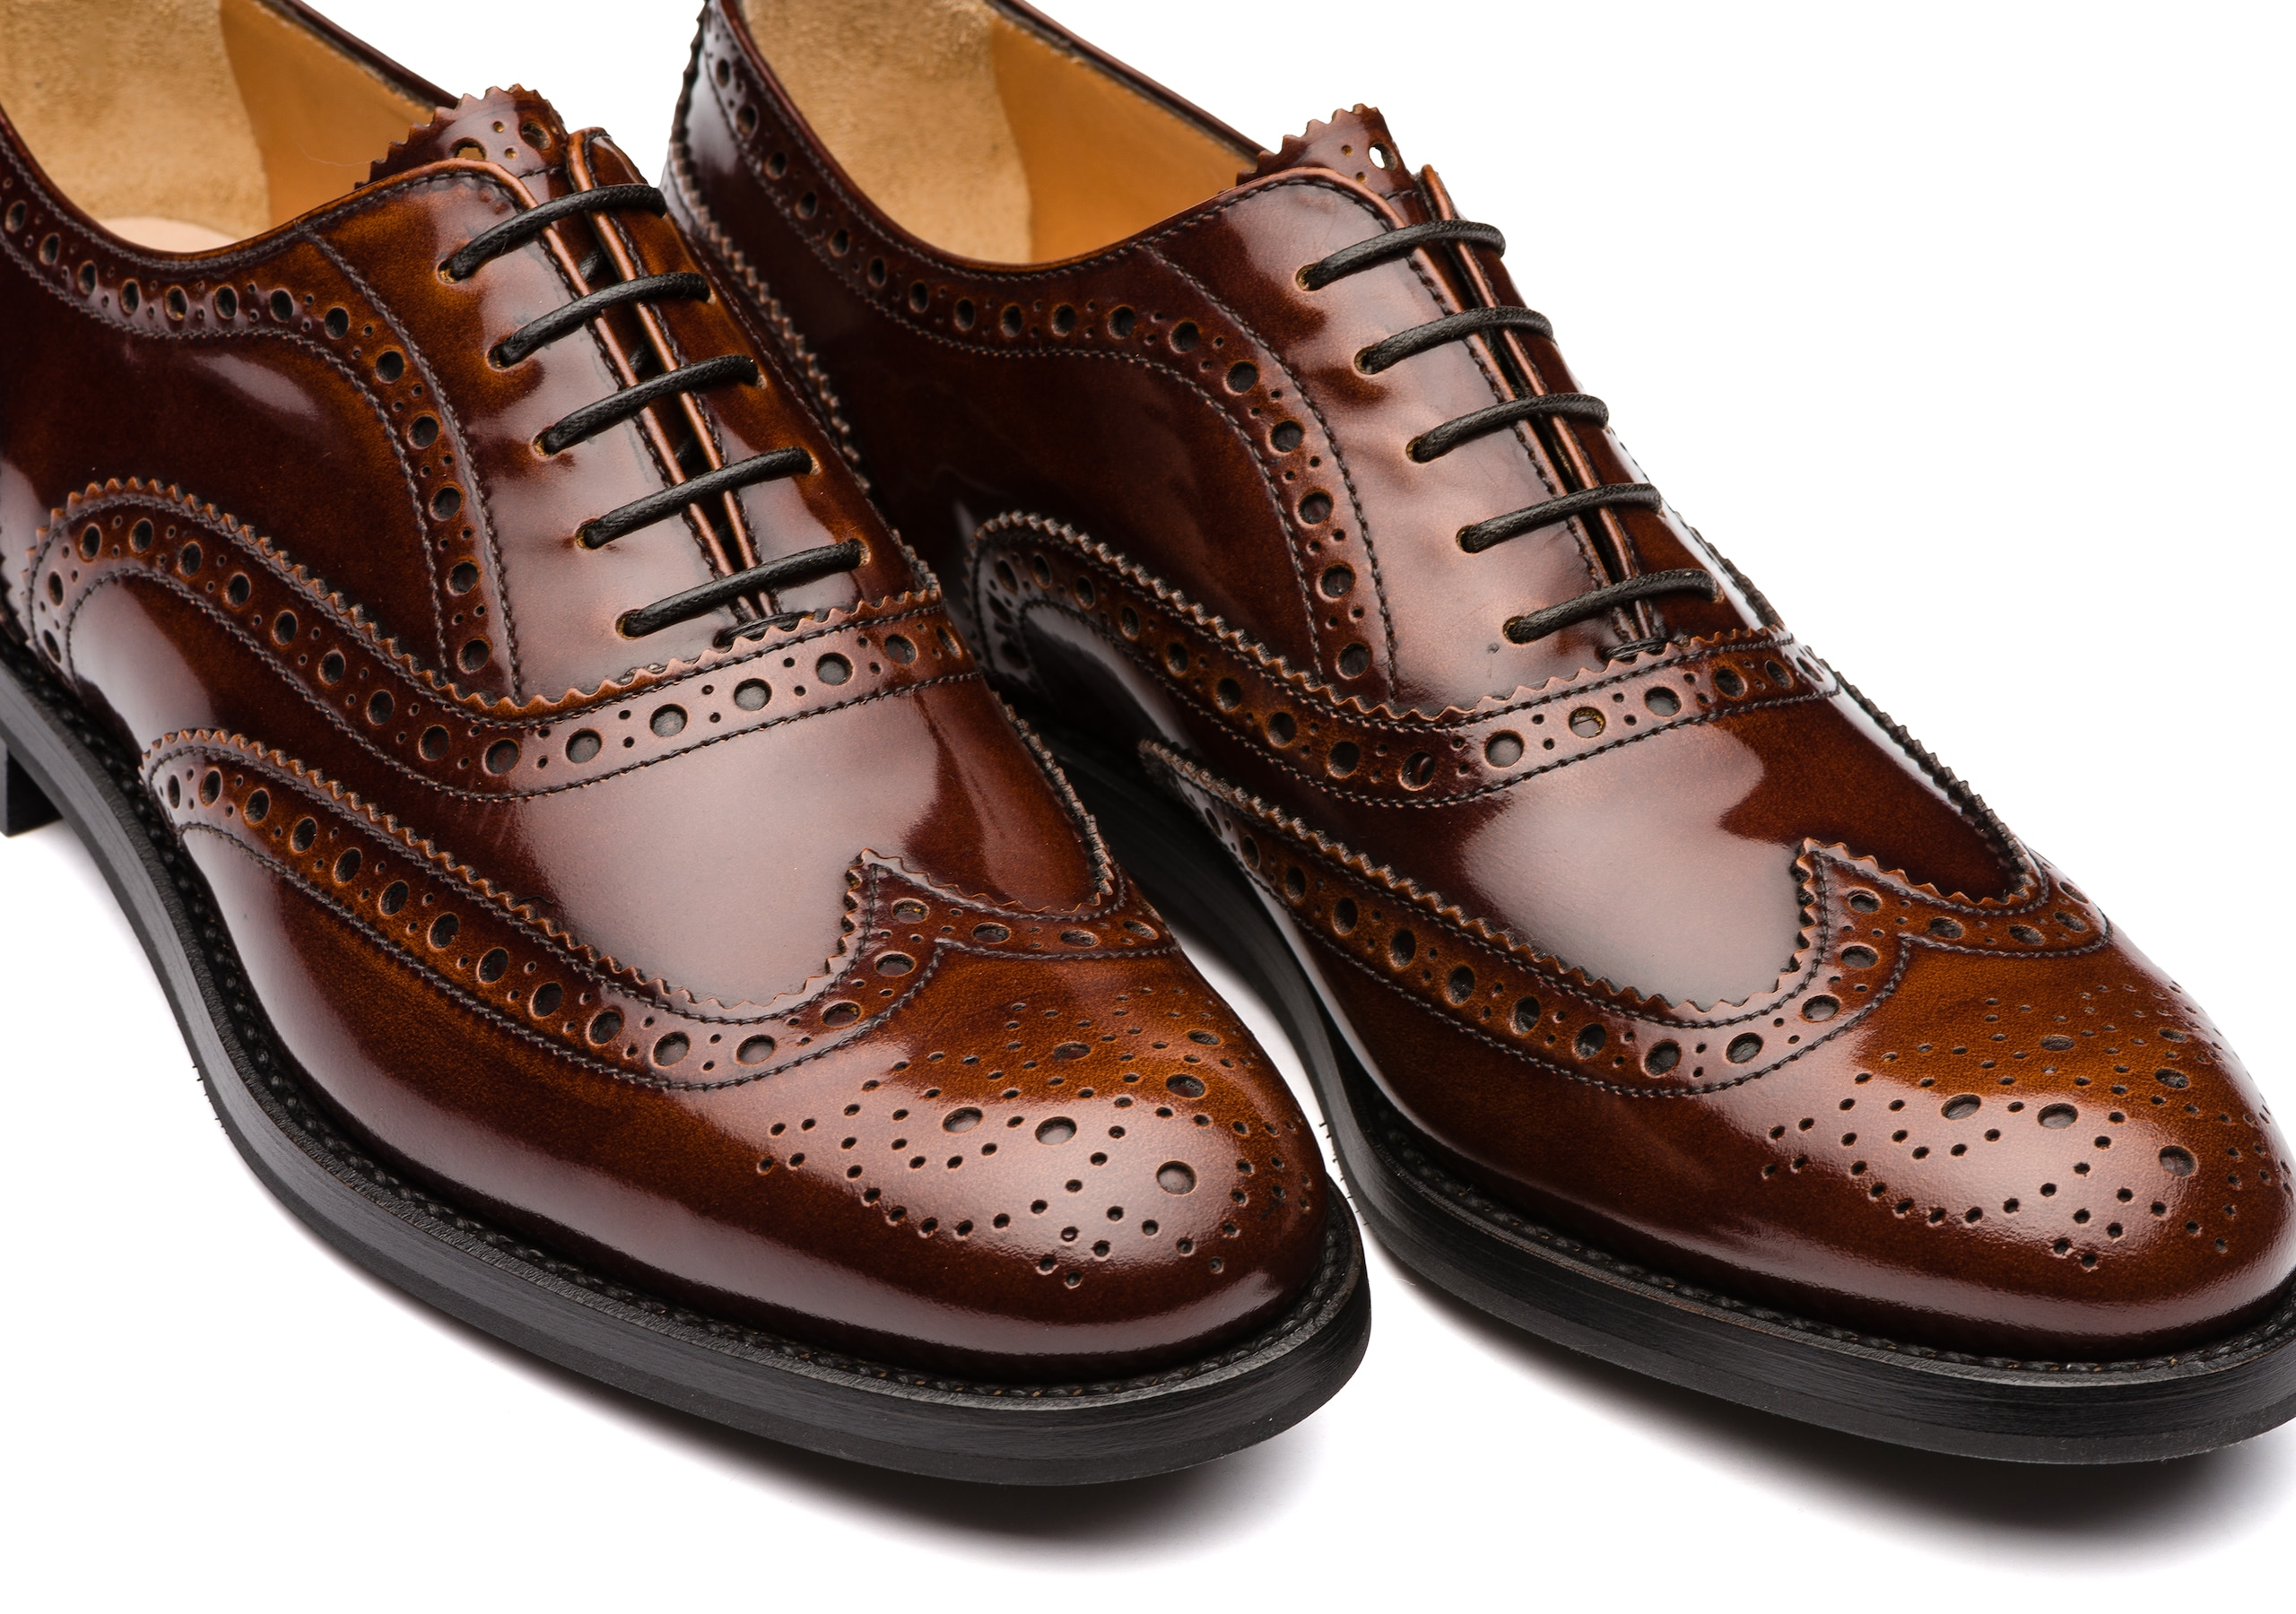 Burwood wg Church's Oxford Brogue in Pelle Lucida Fumè Marrone